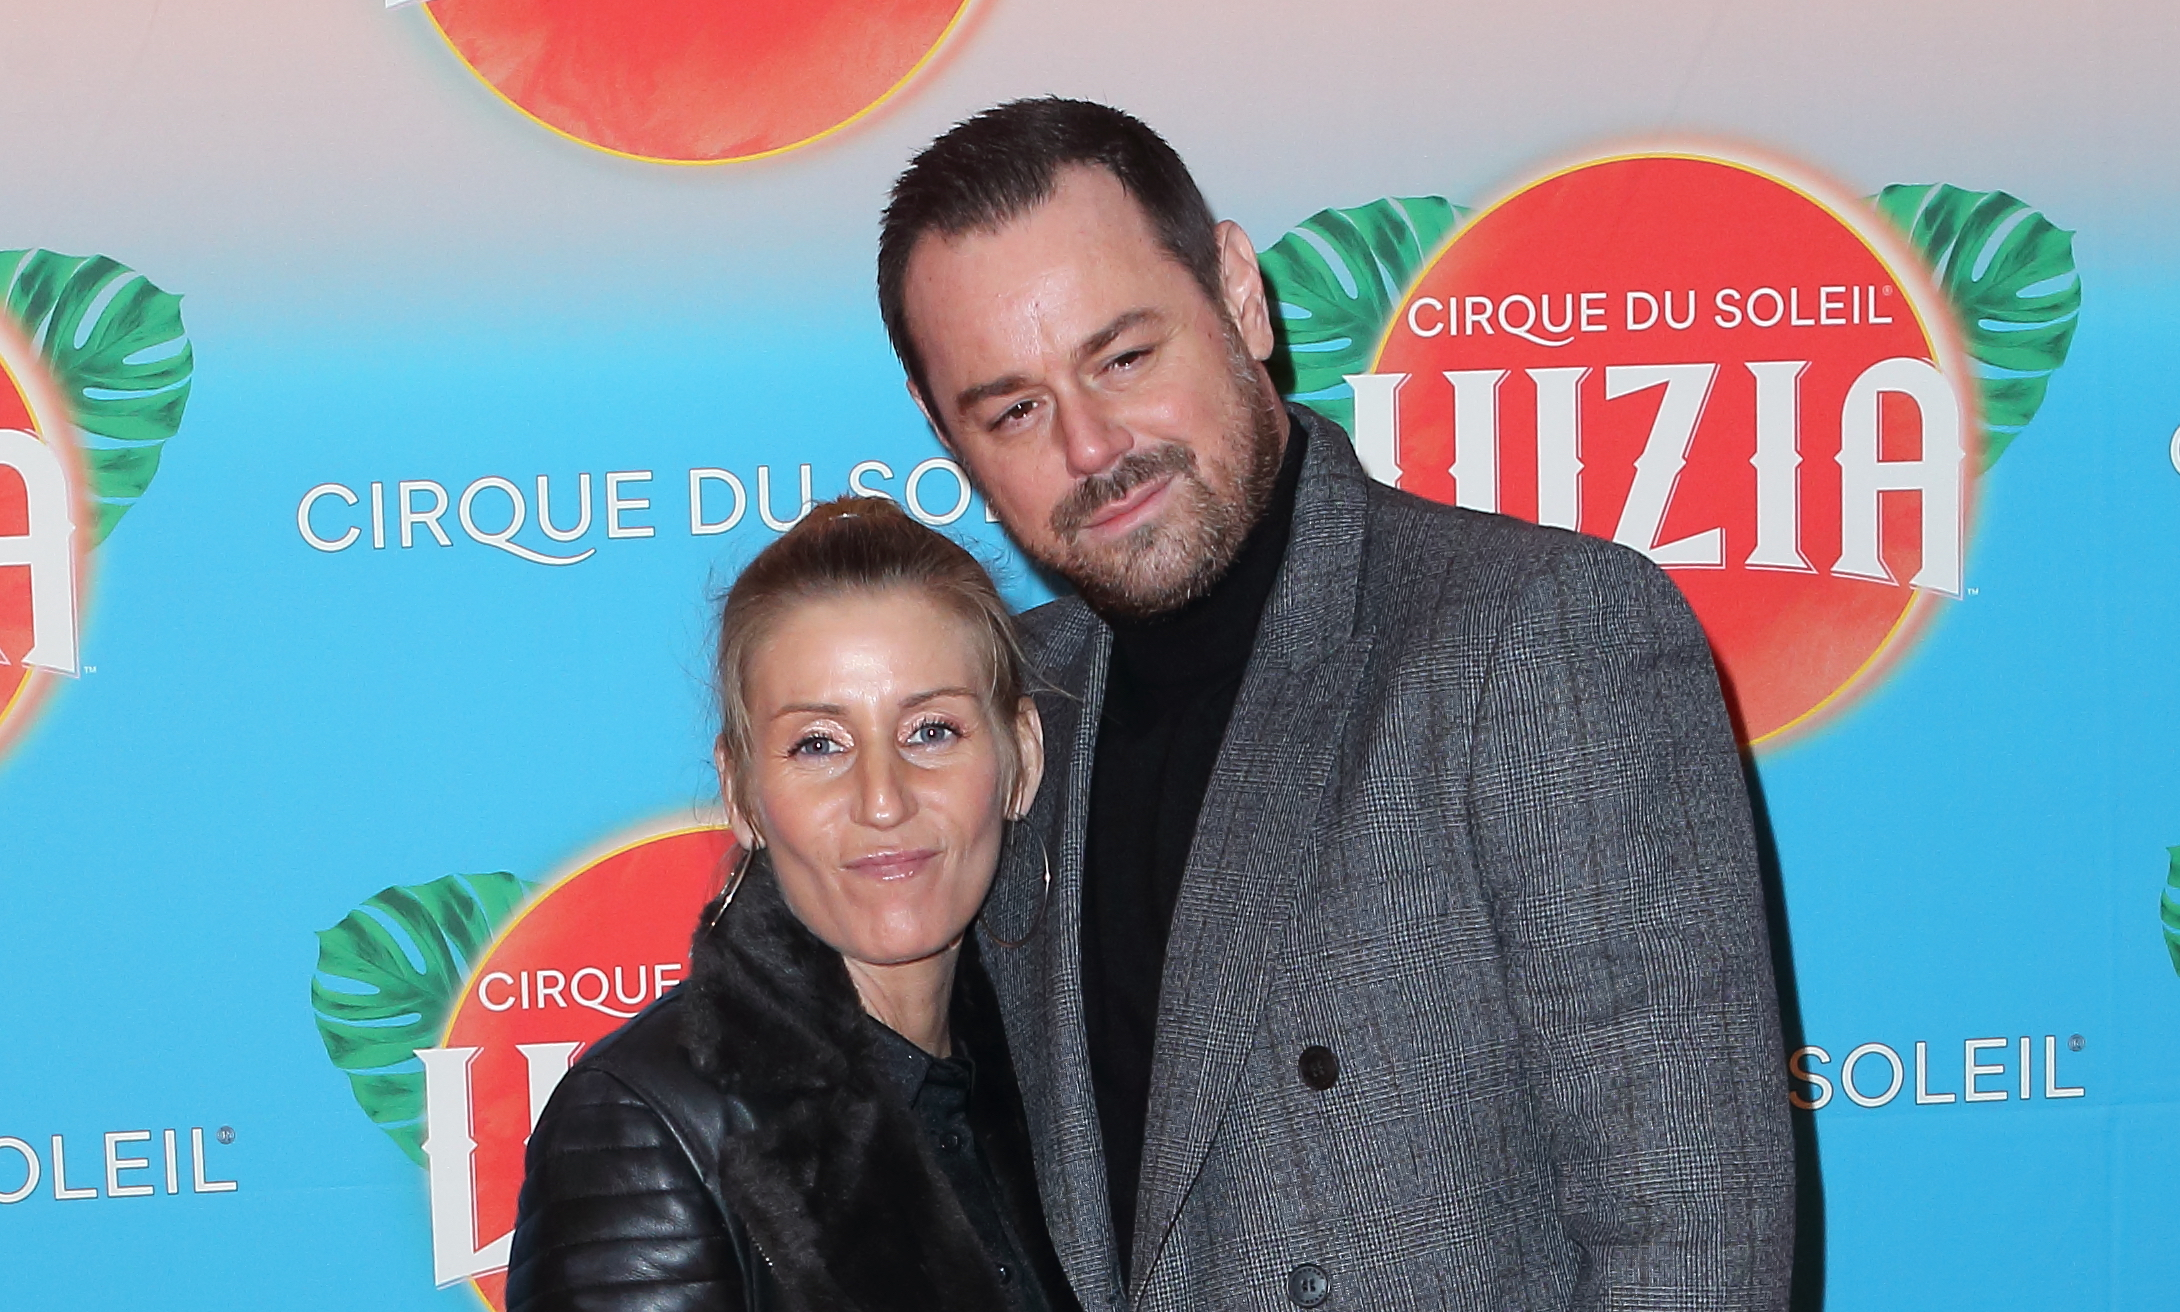 Danny Dyer set to renew wedding vows with wife Jo even though he 'humiliated' her